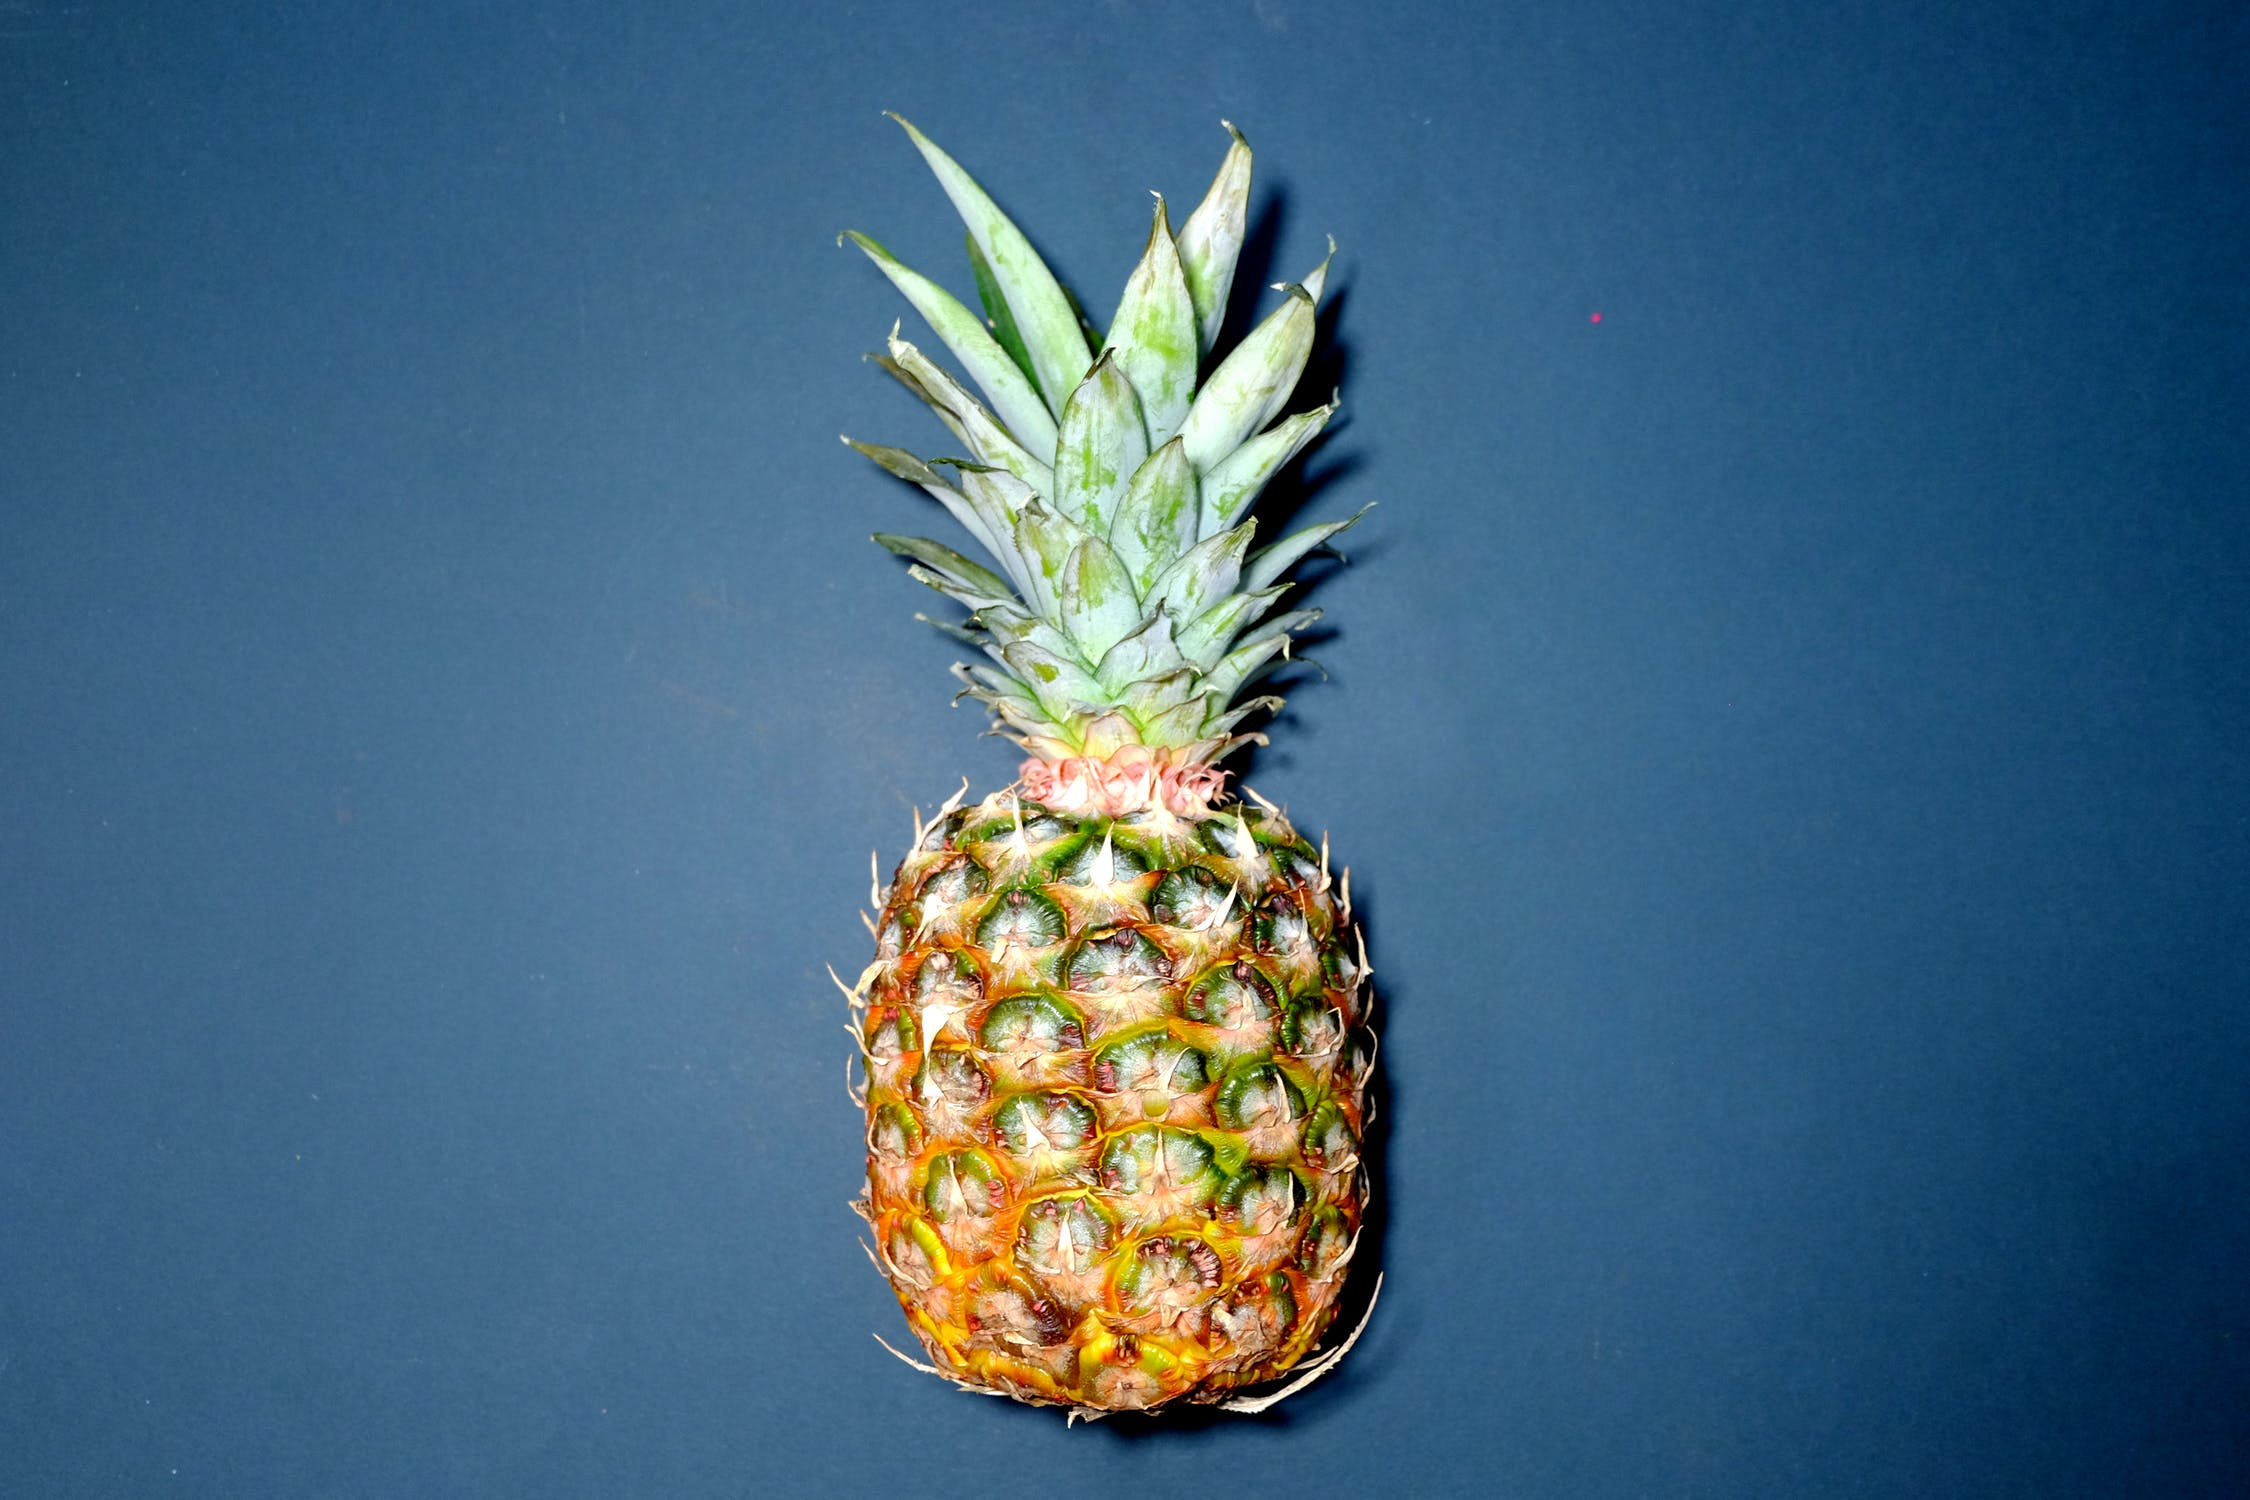 How to tell if a pineapple is ripe?